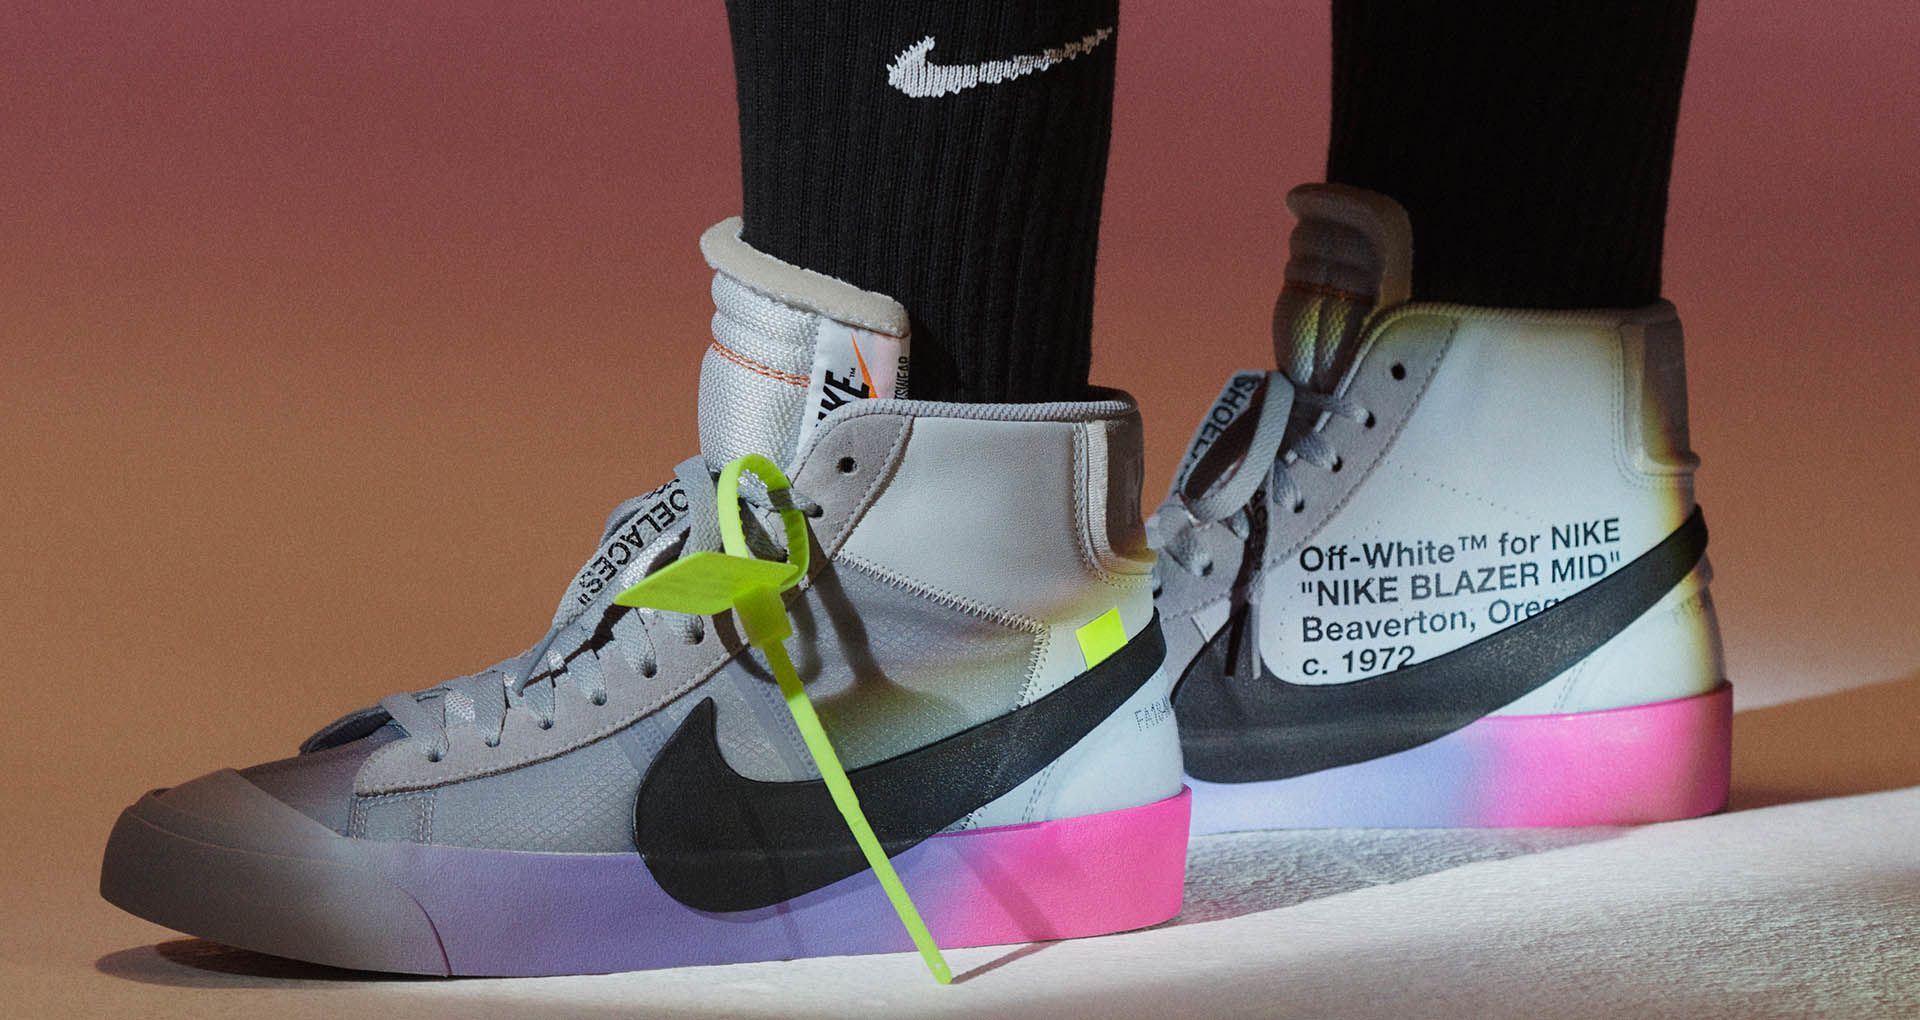 Take A Look At Serena William's Exclusive Off White x Nike